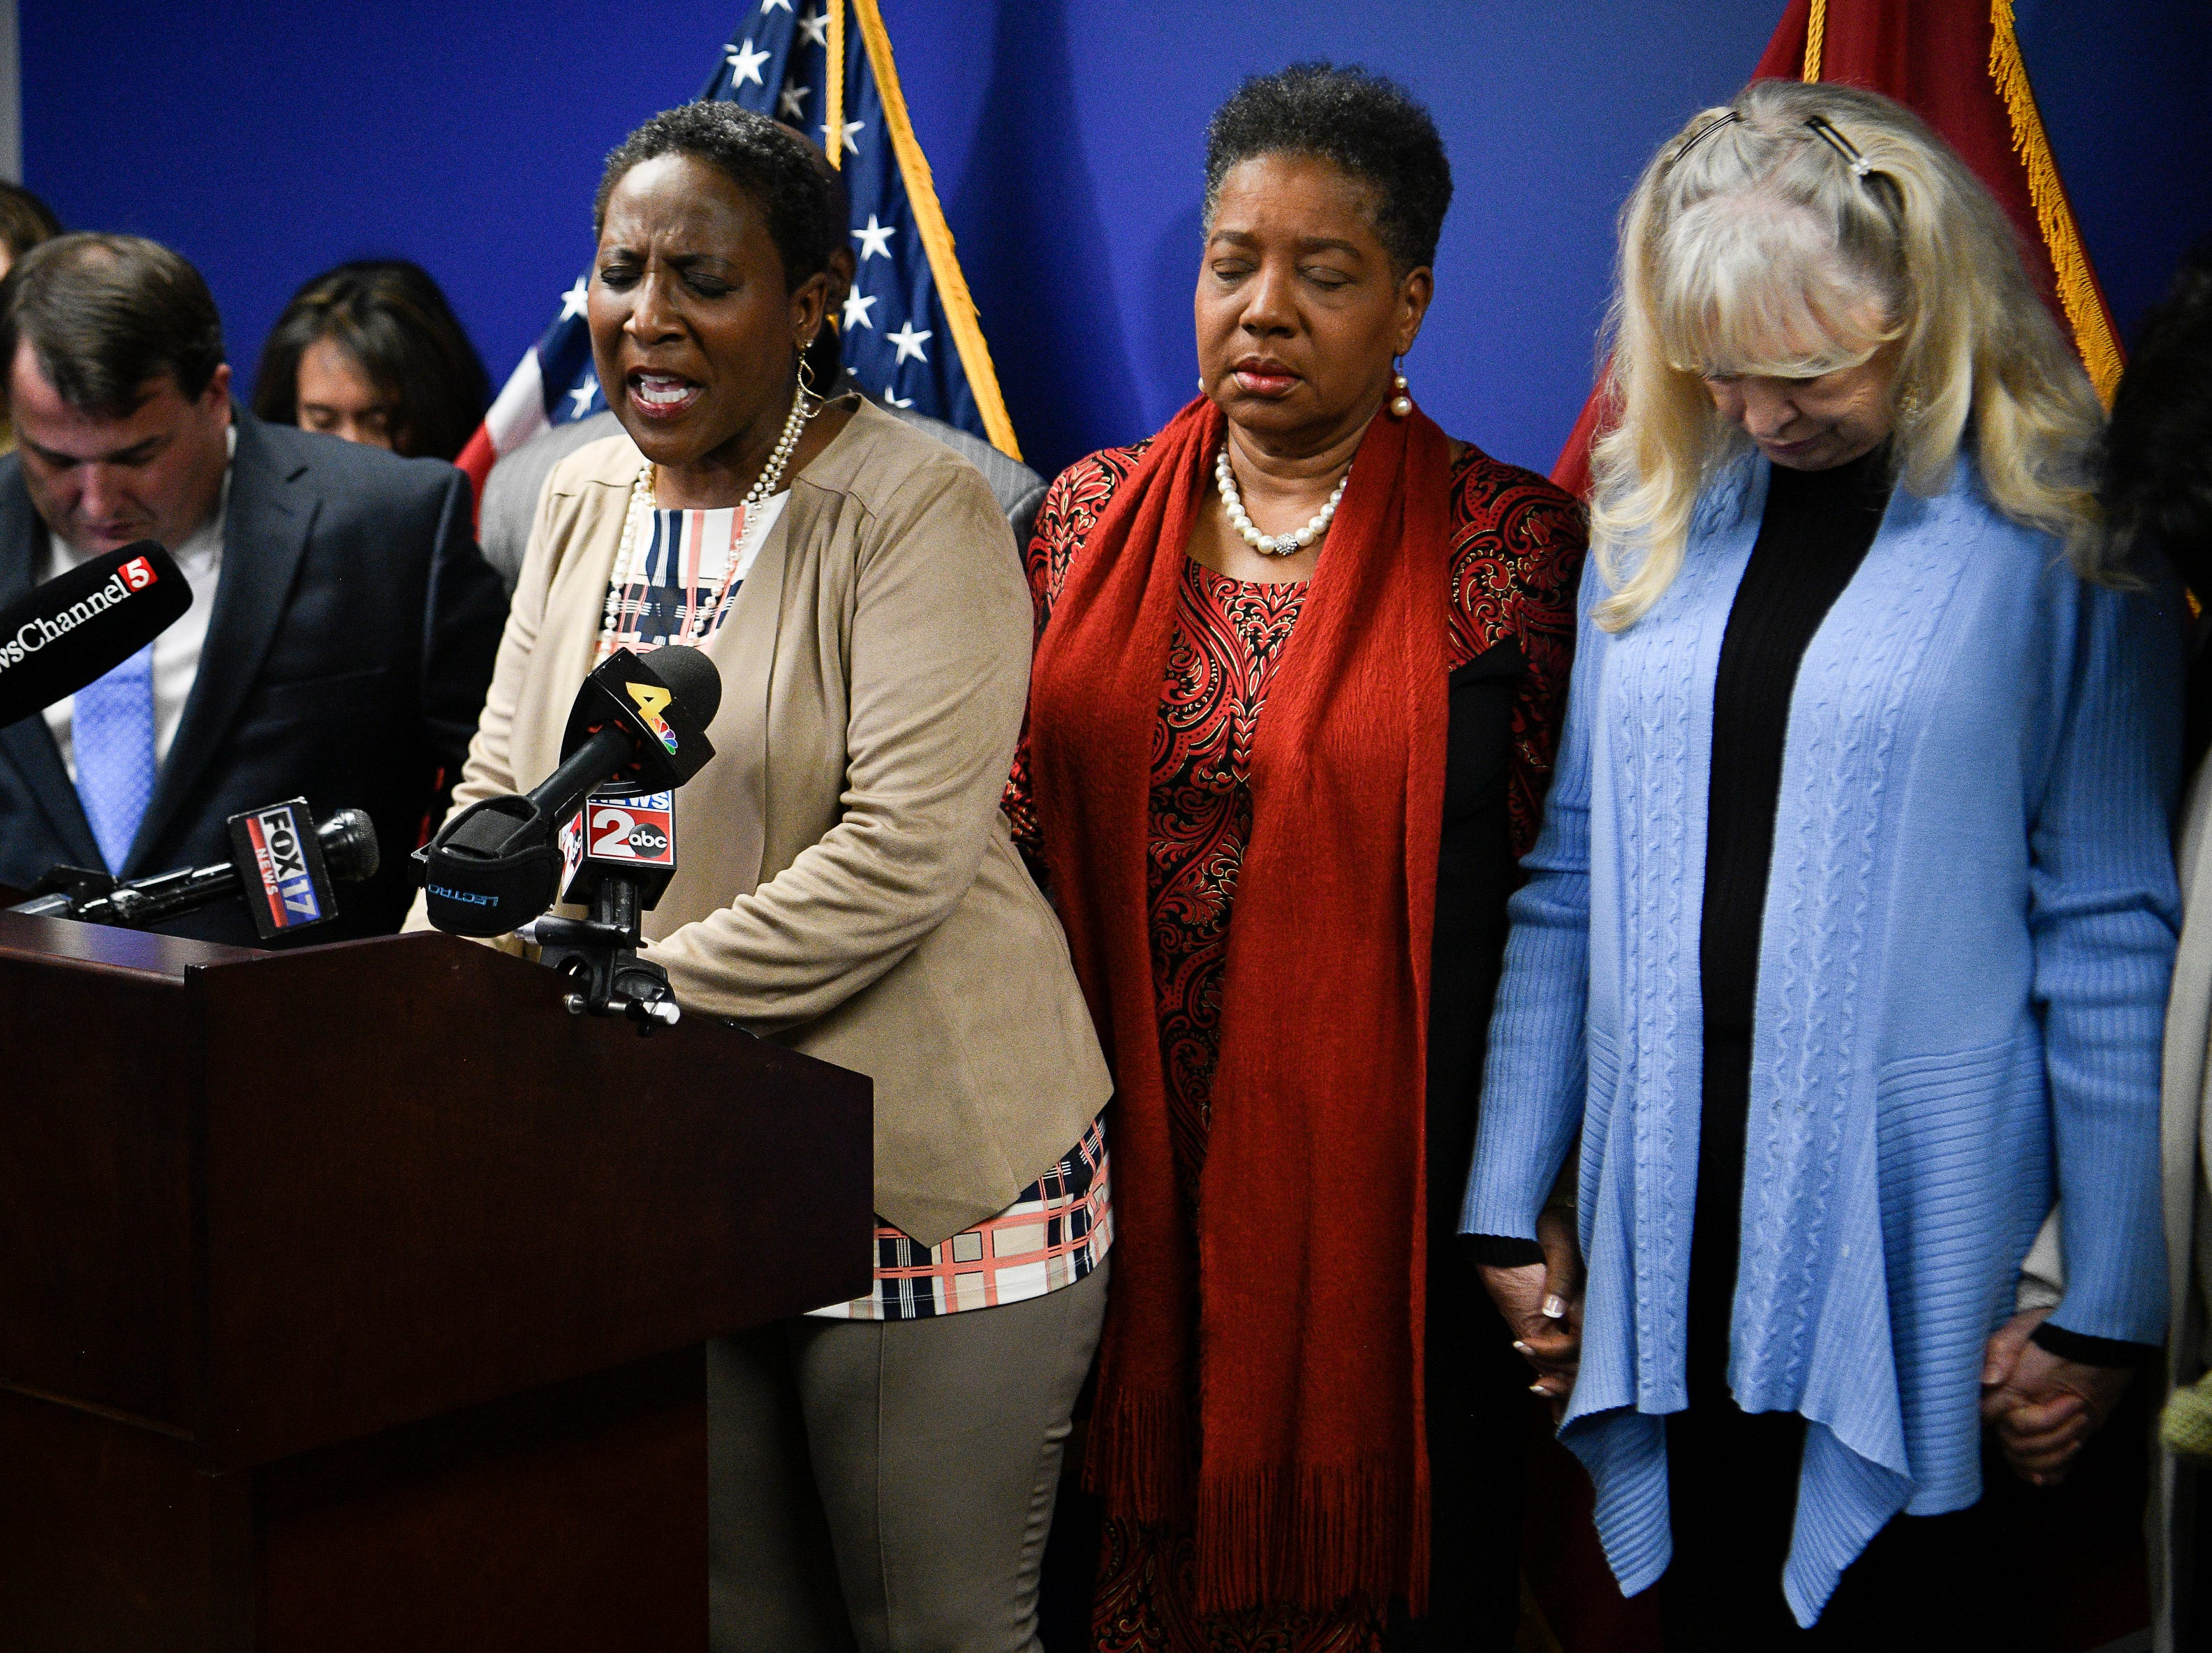 Rev. Judy Cummings leads a prayer during a press conference asking Gov. Bill Haslam to grant Cyntoia Brown clemency after being convicted of murder when she was 16-years-old in 2004 at the Cordell Hull Building Thursday, Jan. 3, 2019, in Nashville, Tenn.